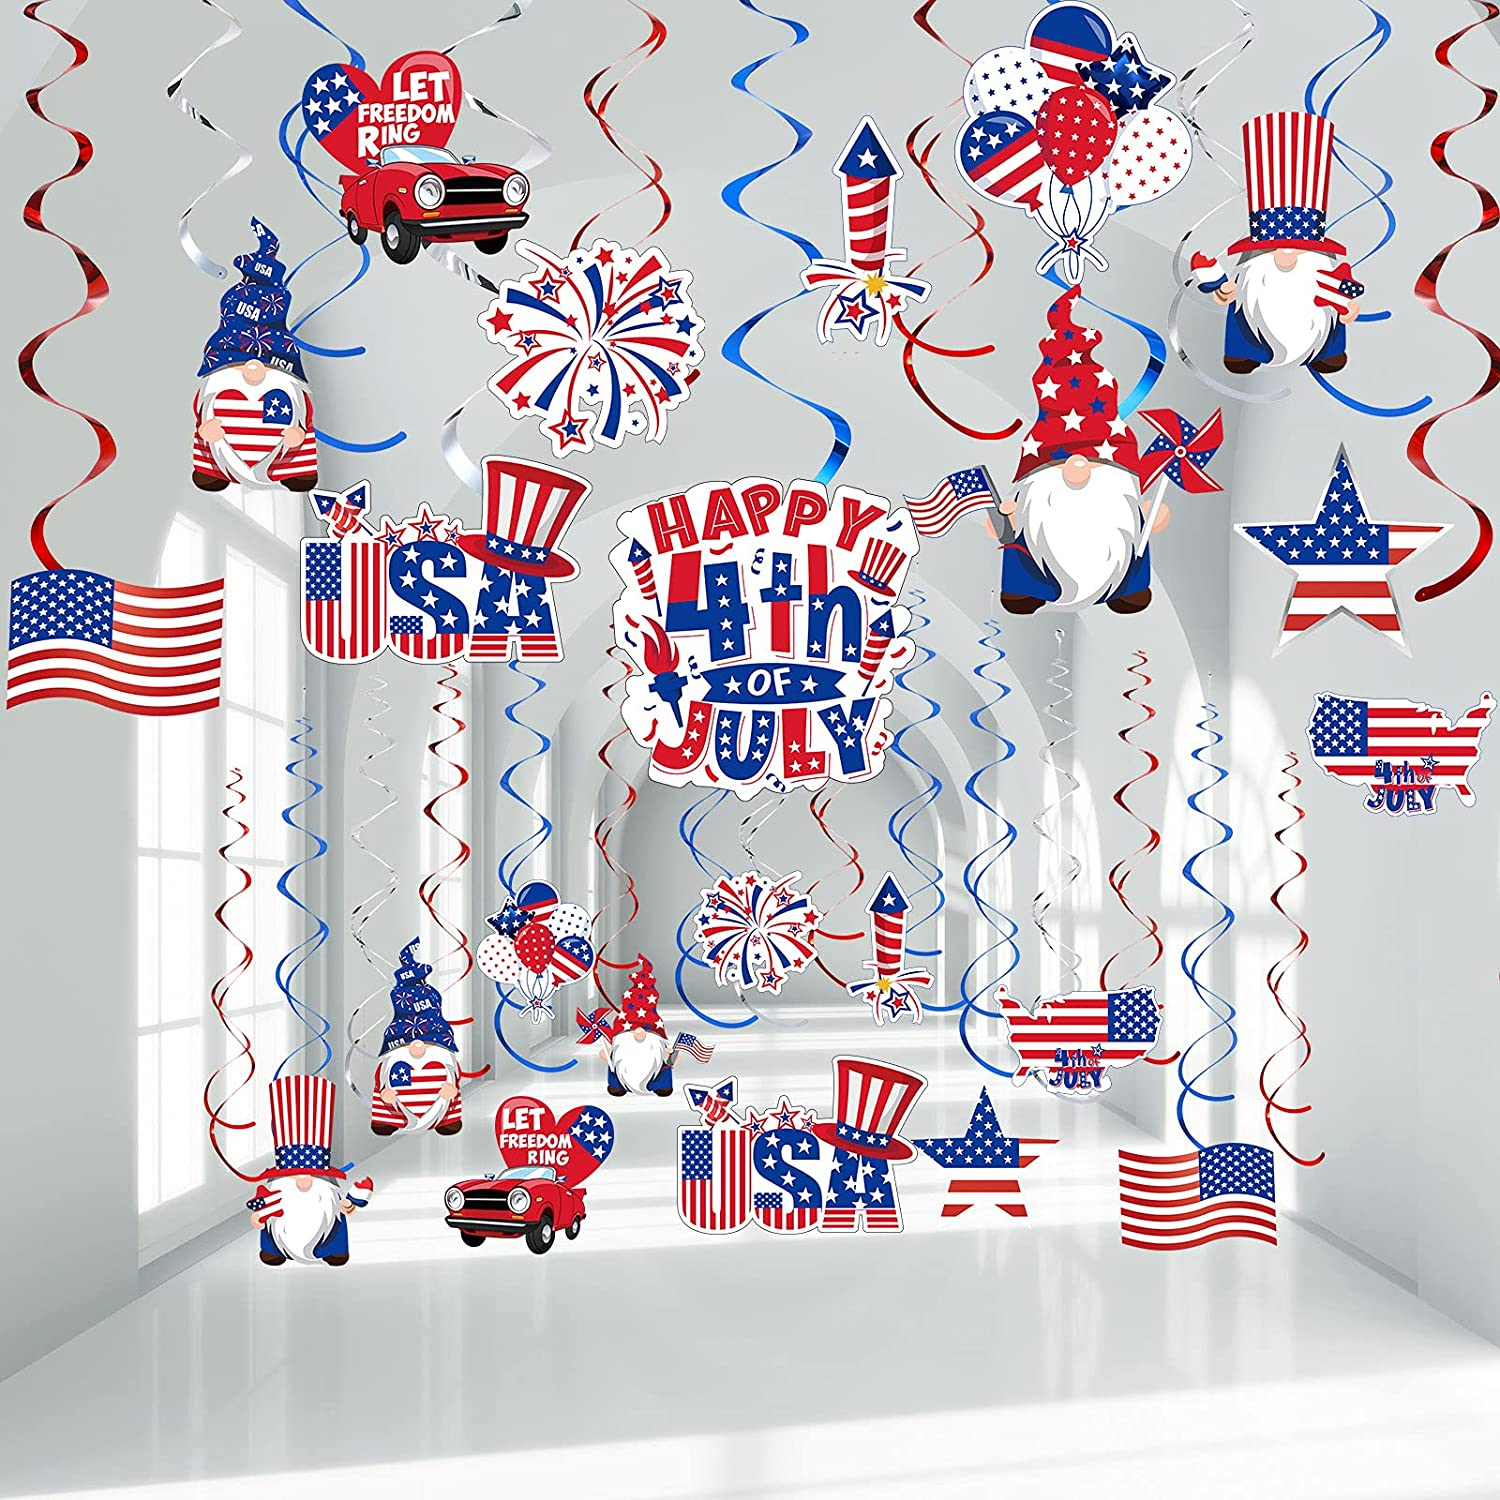 Happy 4th of July Decoration, Independence Day Hanging Swirls Patriotic American Flag/Star Streamers Memorial Day Red Silver and Blue Swirls Decor for 4th July Party Supplies, 30CT